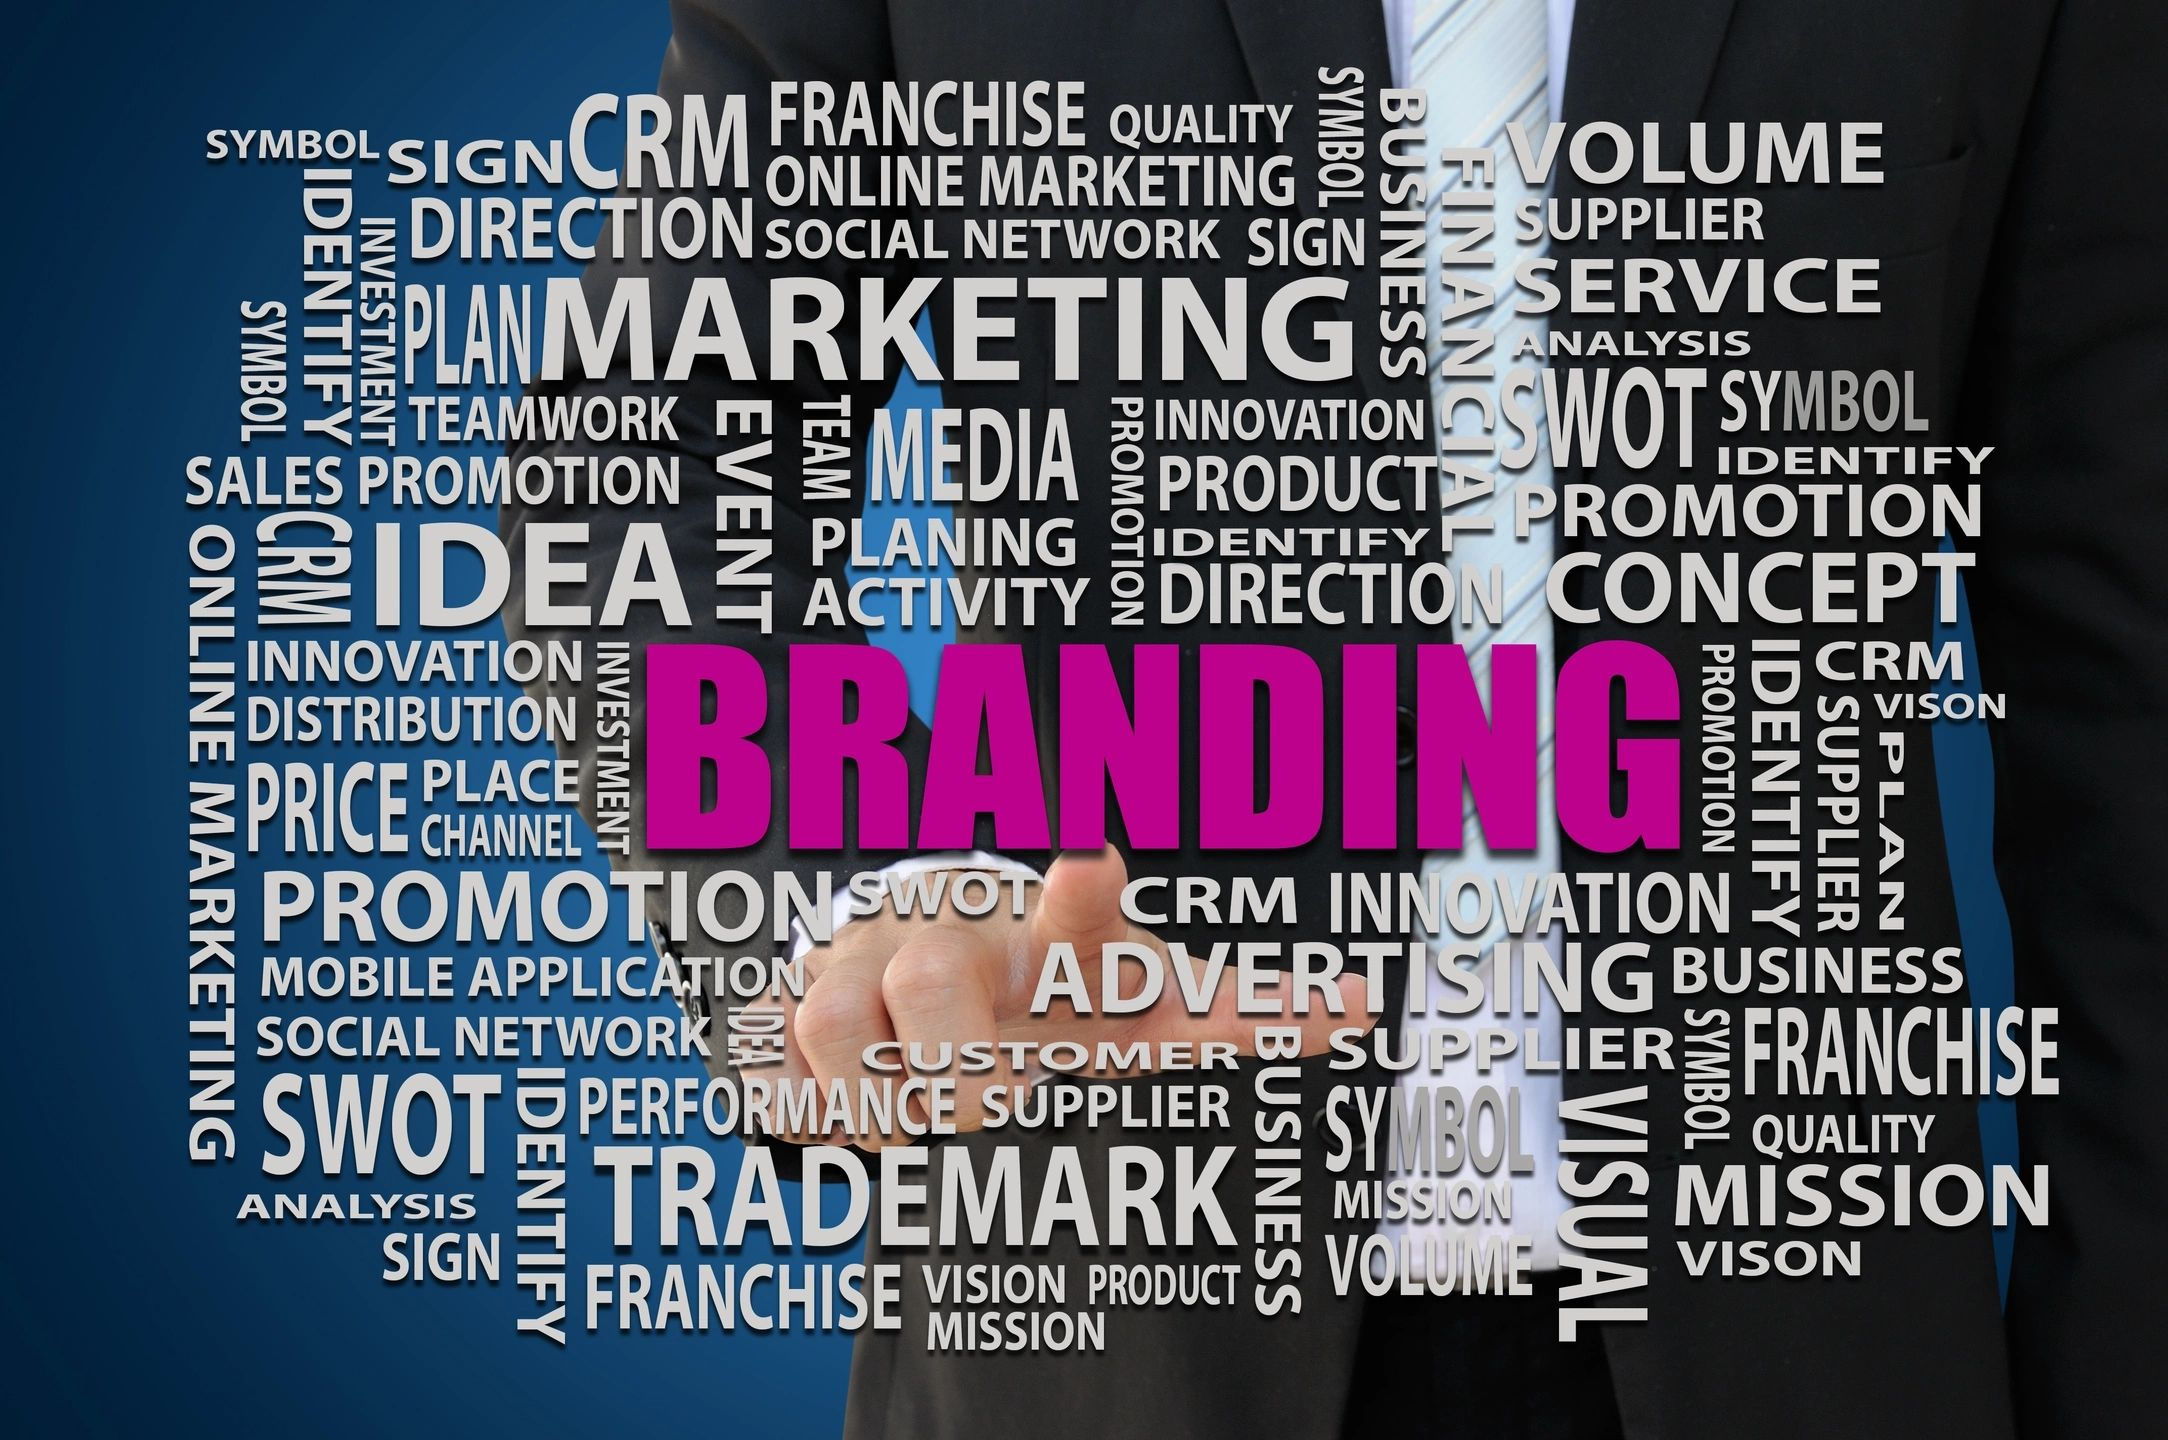 Branding Picture